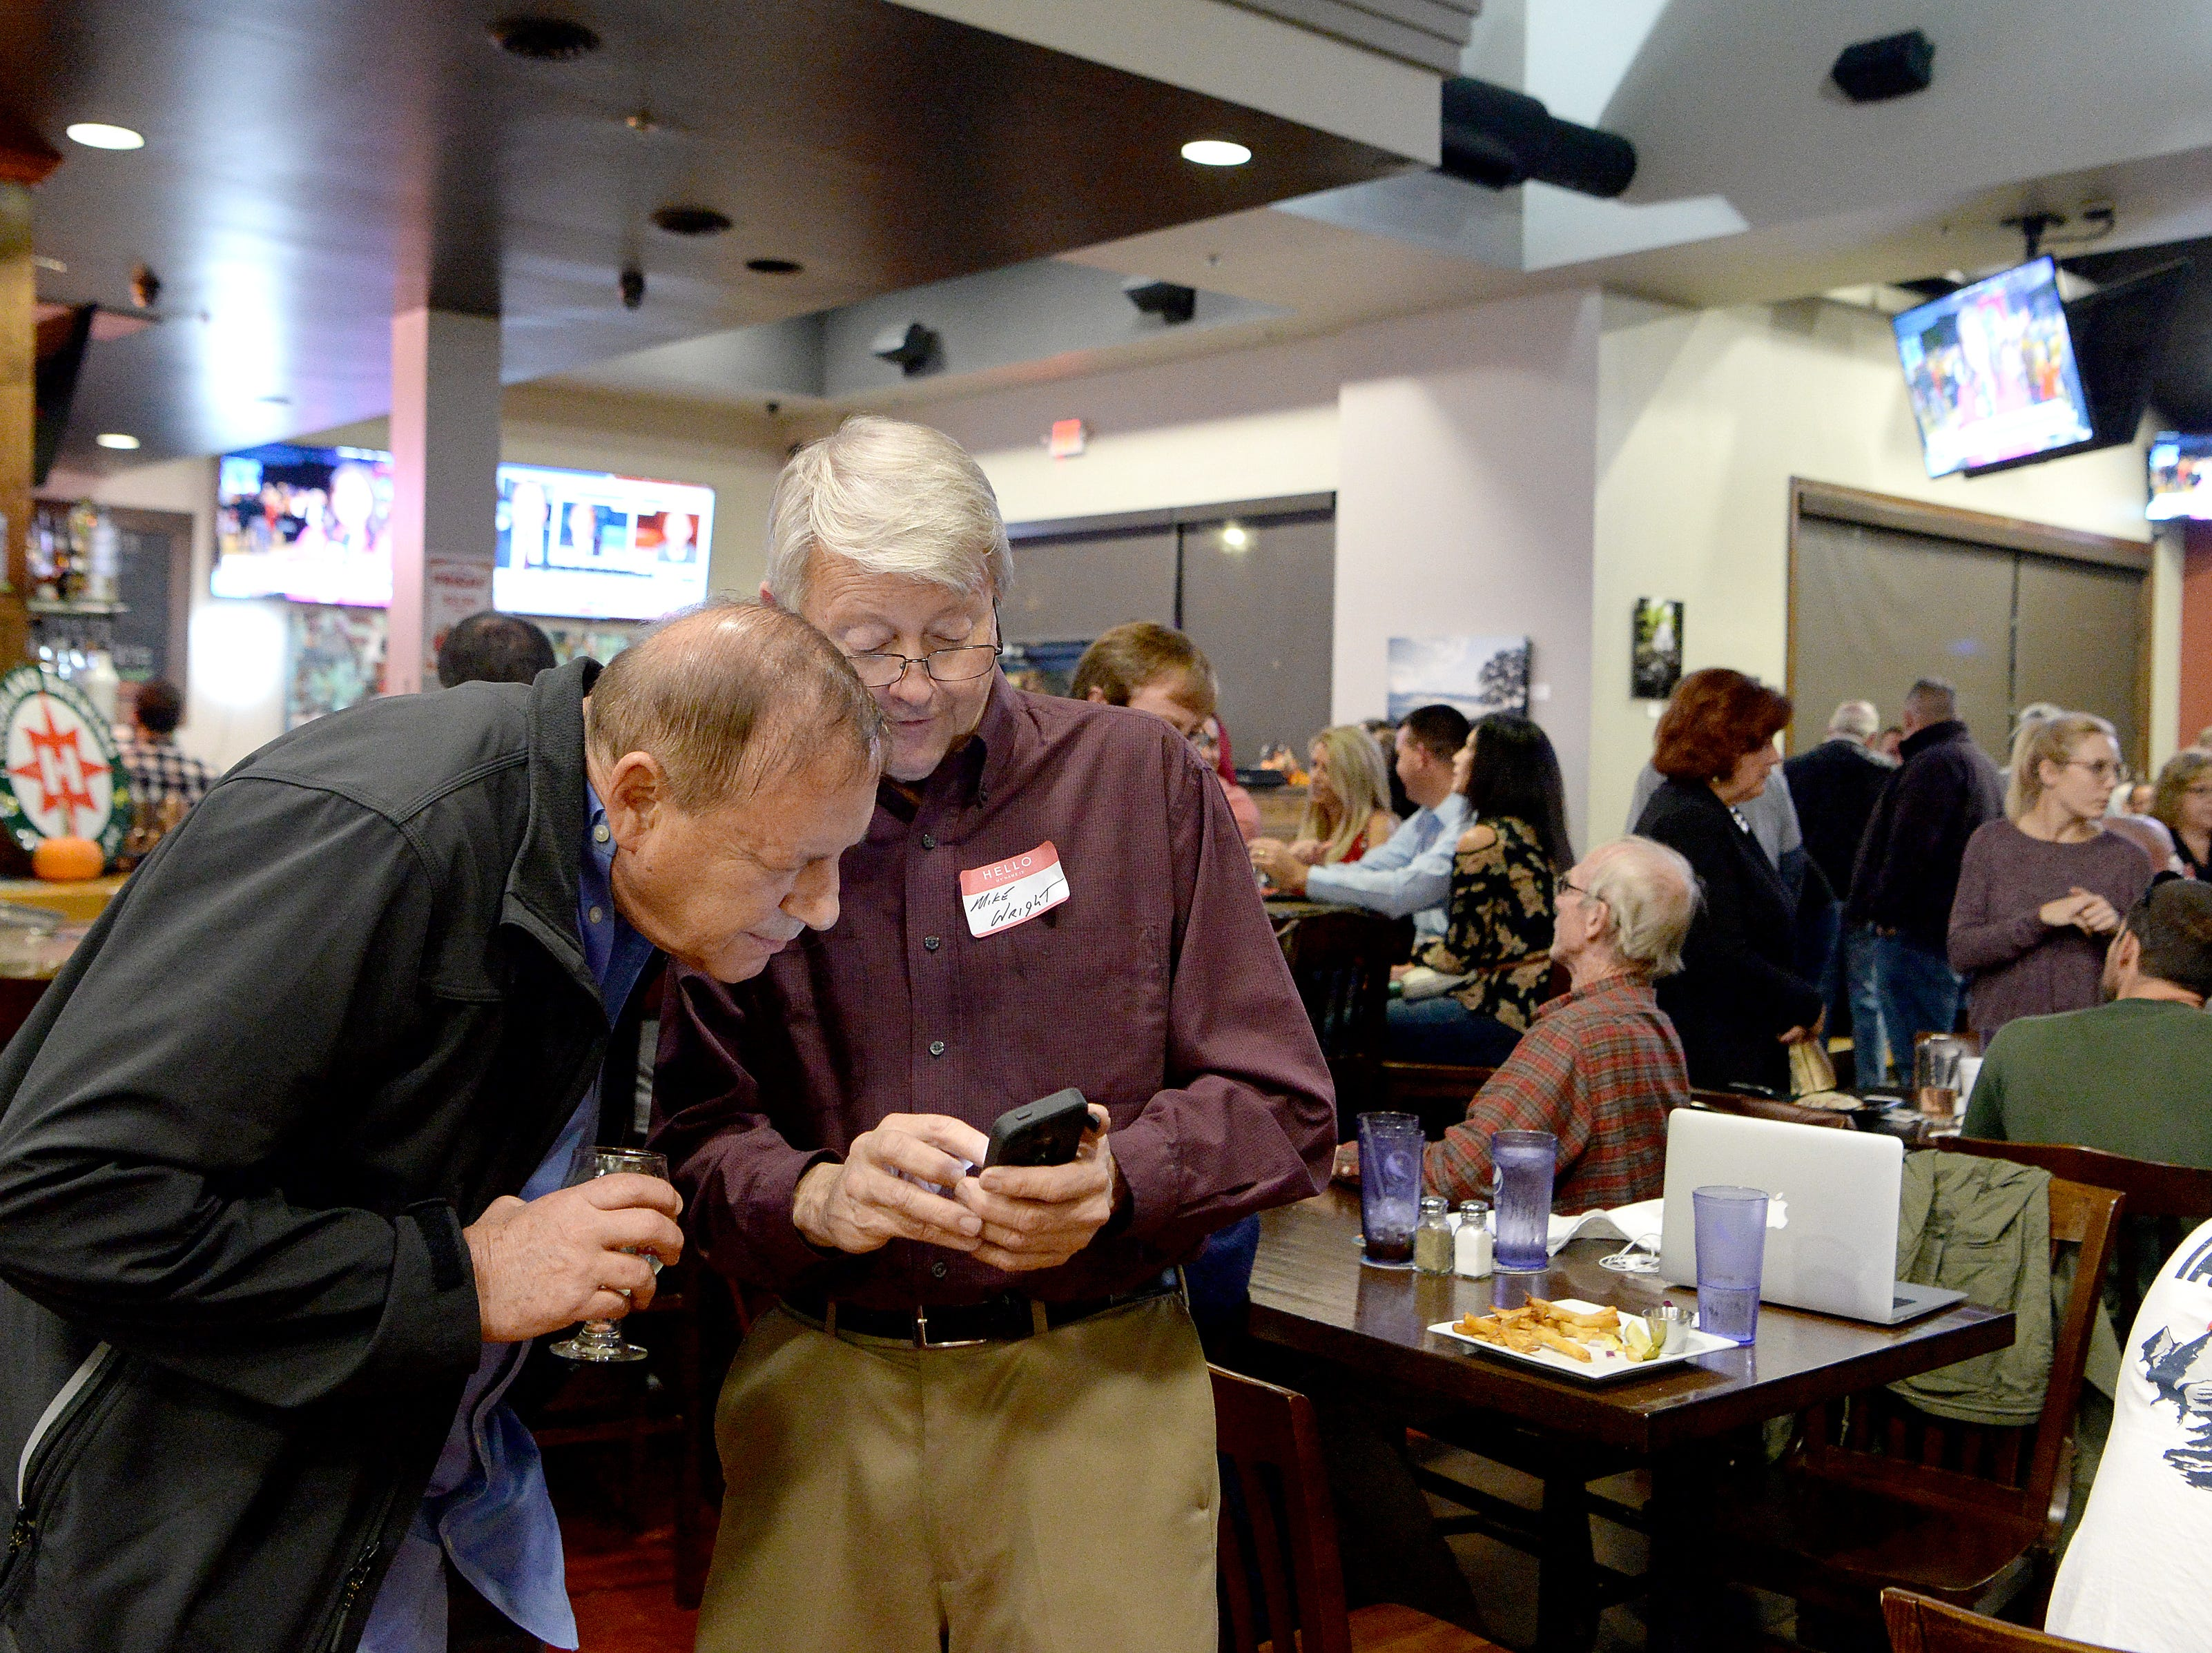 Supporters watch results roll in during an election results watch party for the Buncombe County Republicans at Twisted Laurel on Nov. 6, 2018.